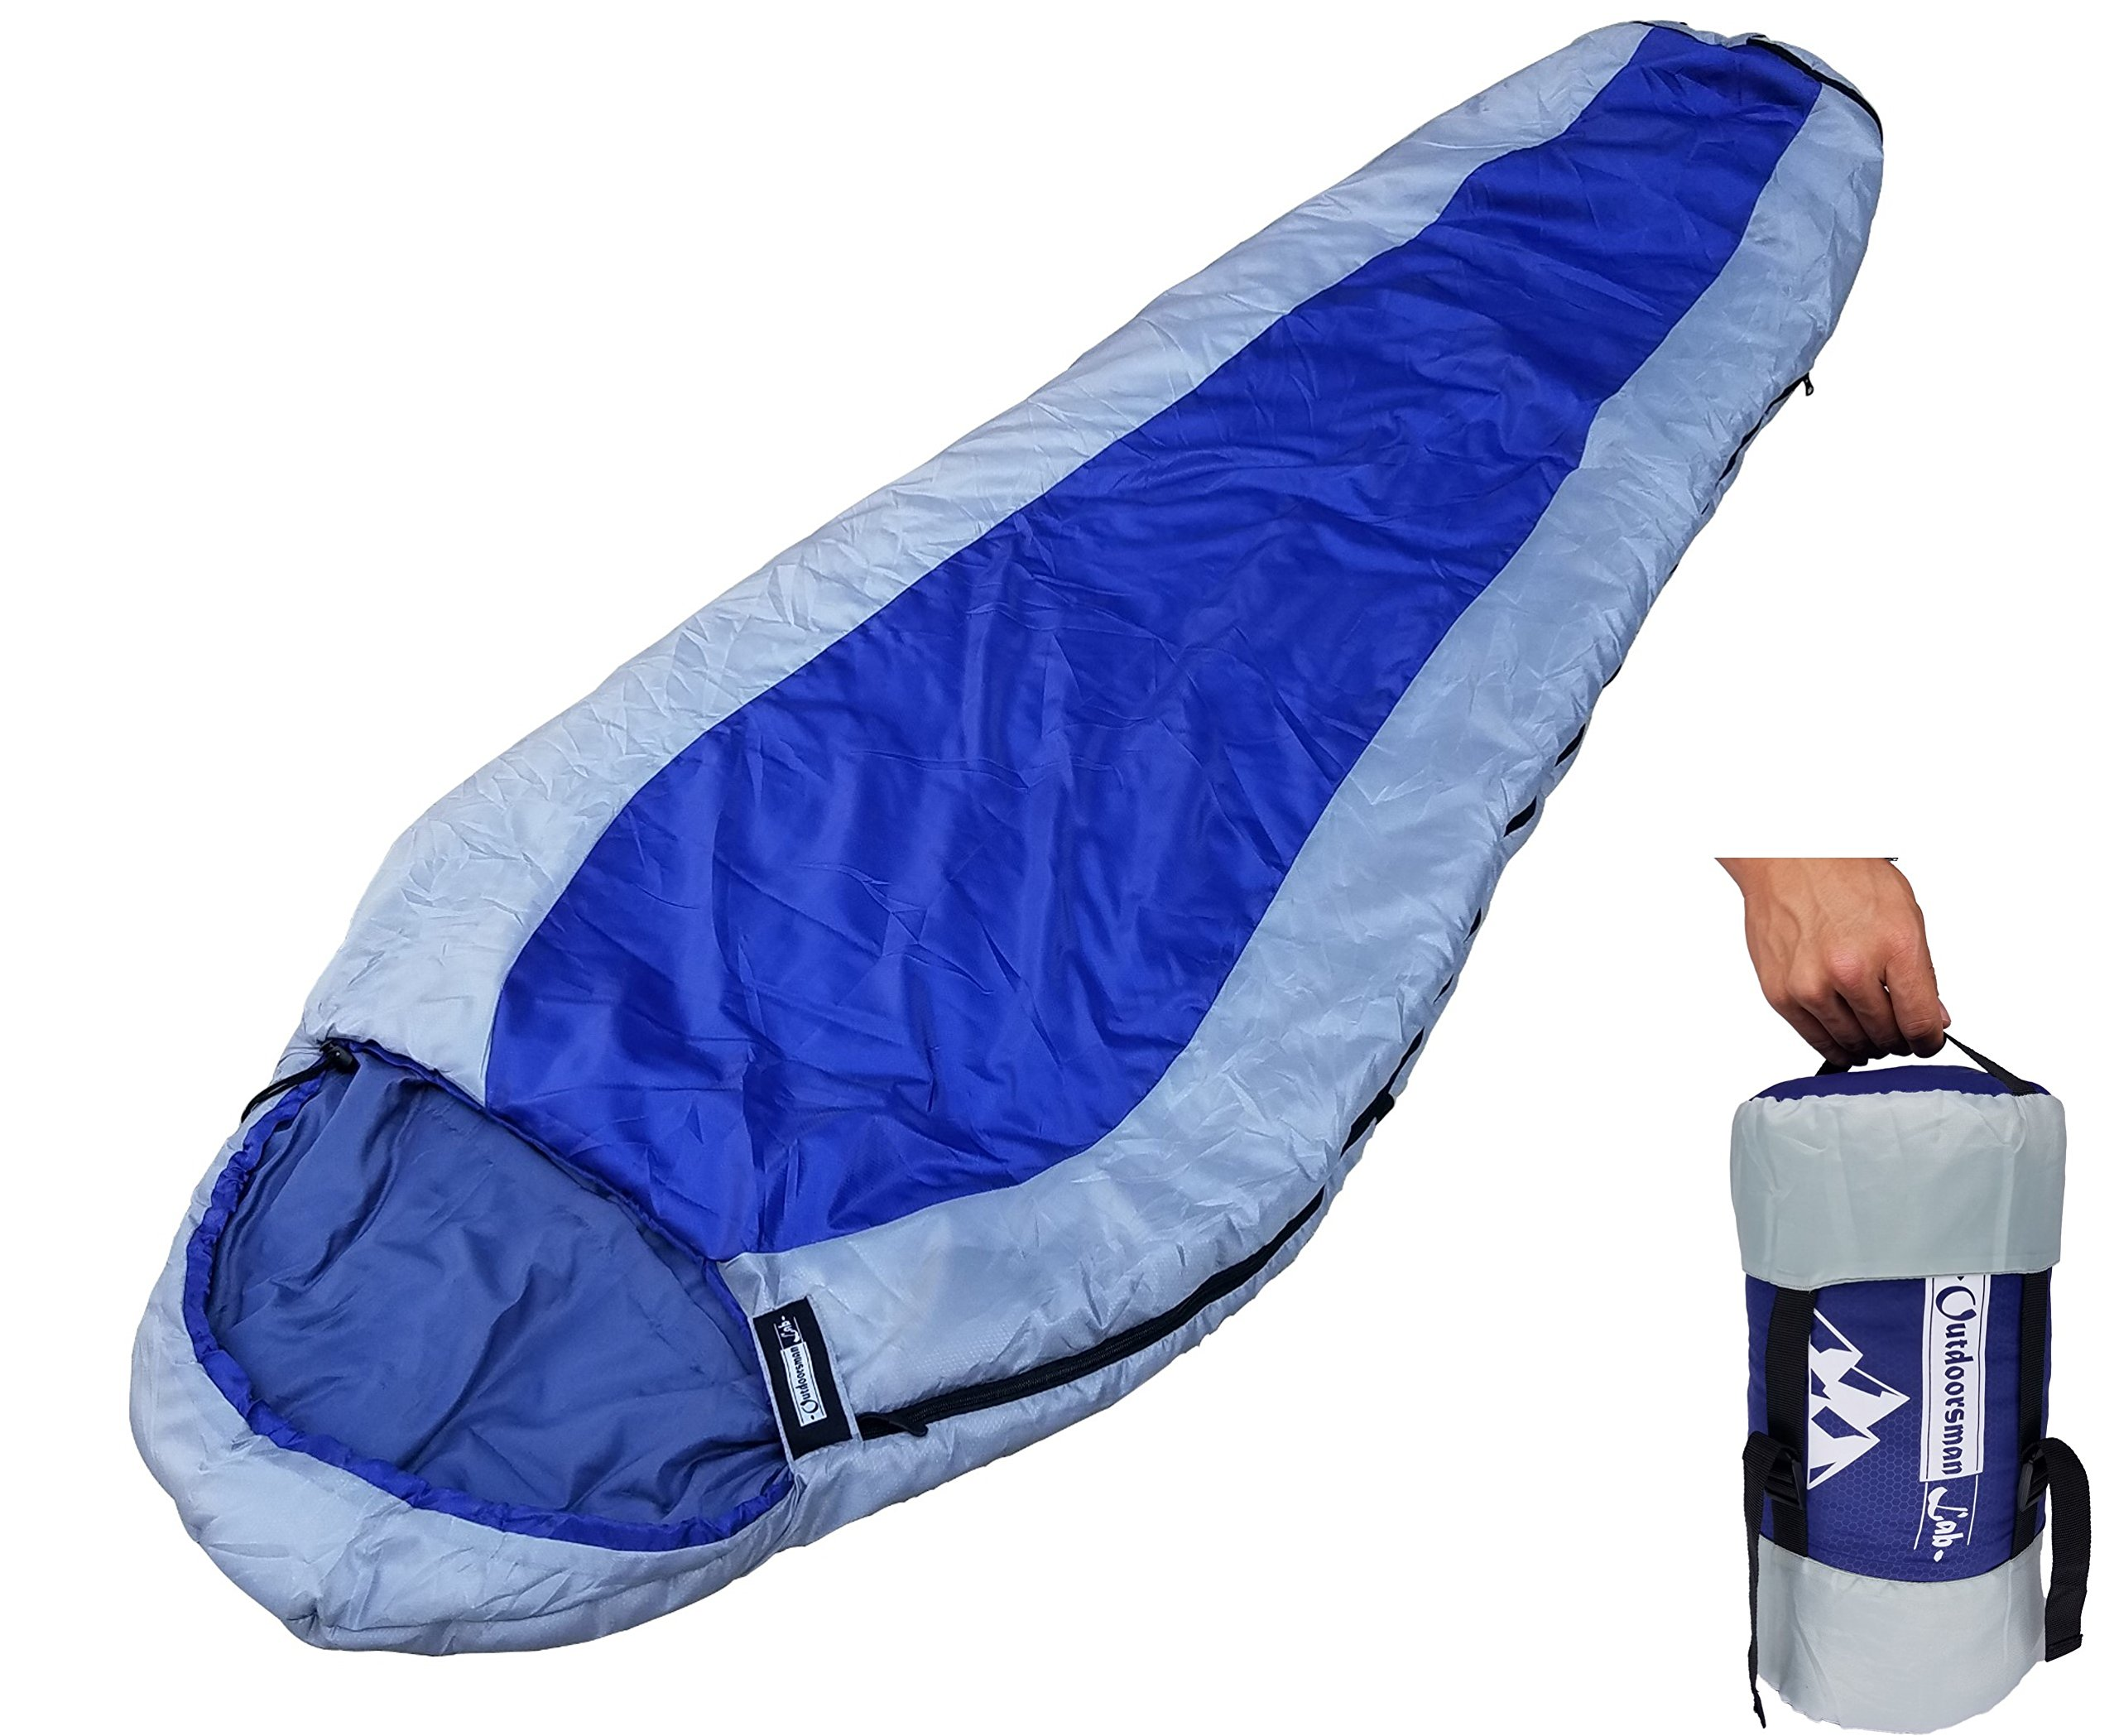 Outdoorsman Lab Mummy Sleeping Bag for Adults & Kids | Ultralight Backpacking & Camping Sleeping Bag | 3 Season 29F, Water Resistant, Compact & Lightweight, Includes Compression Sack 3